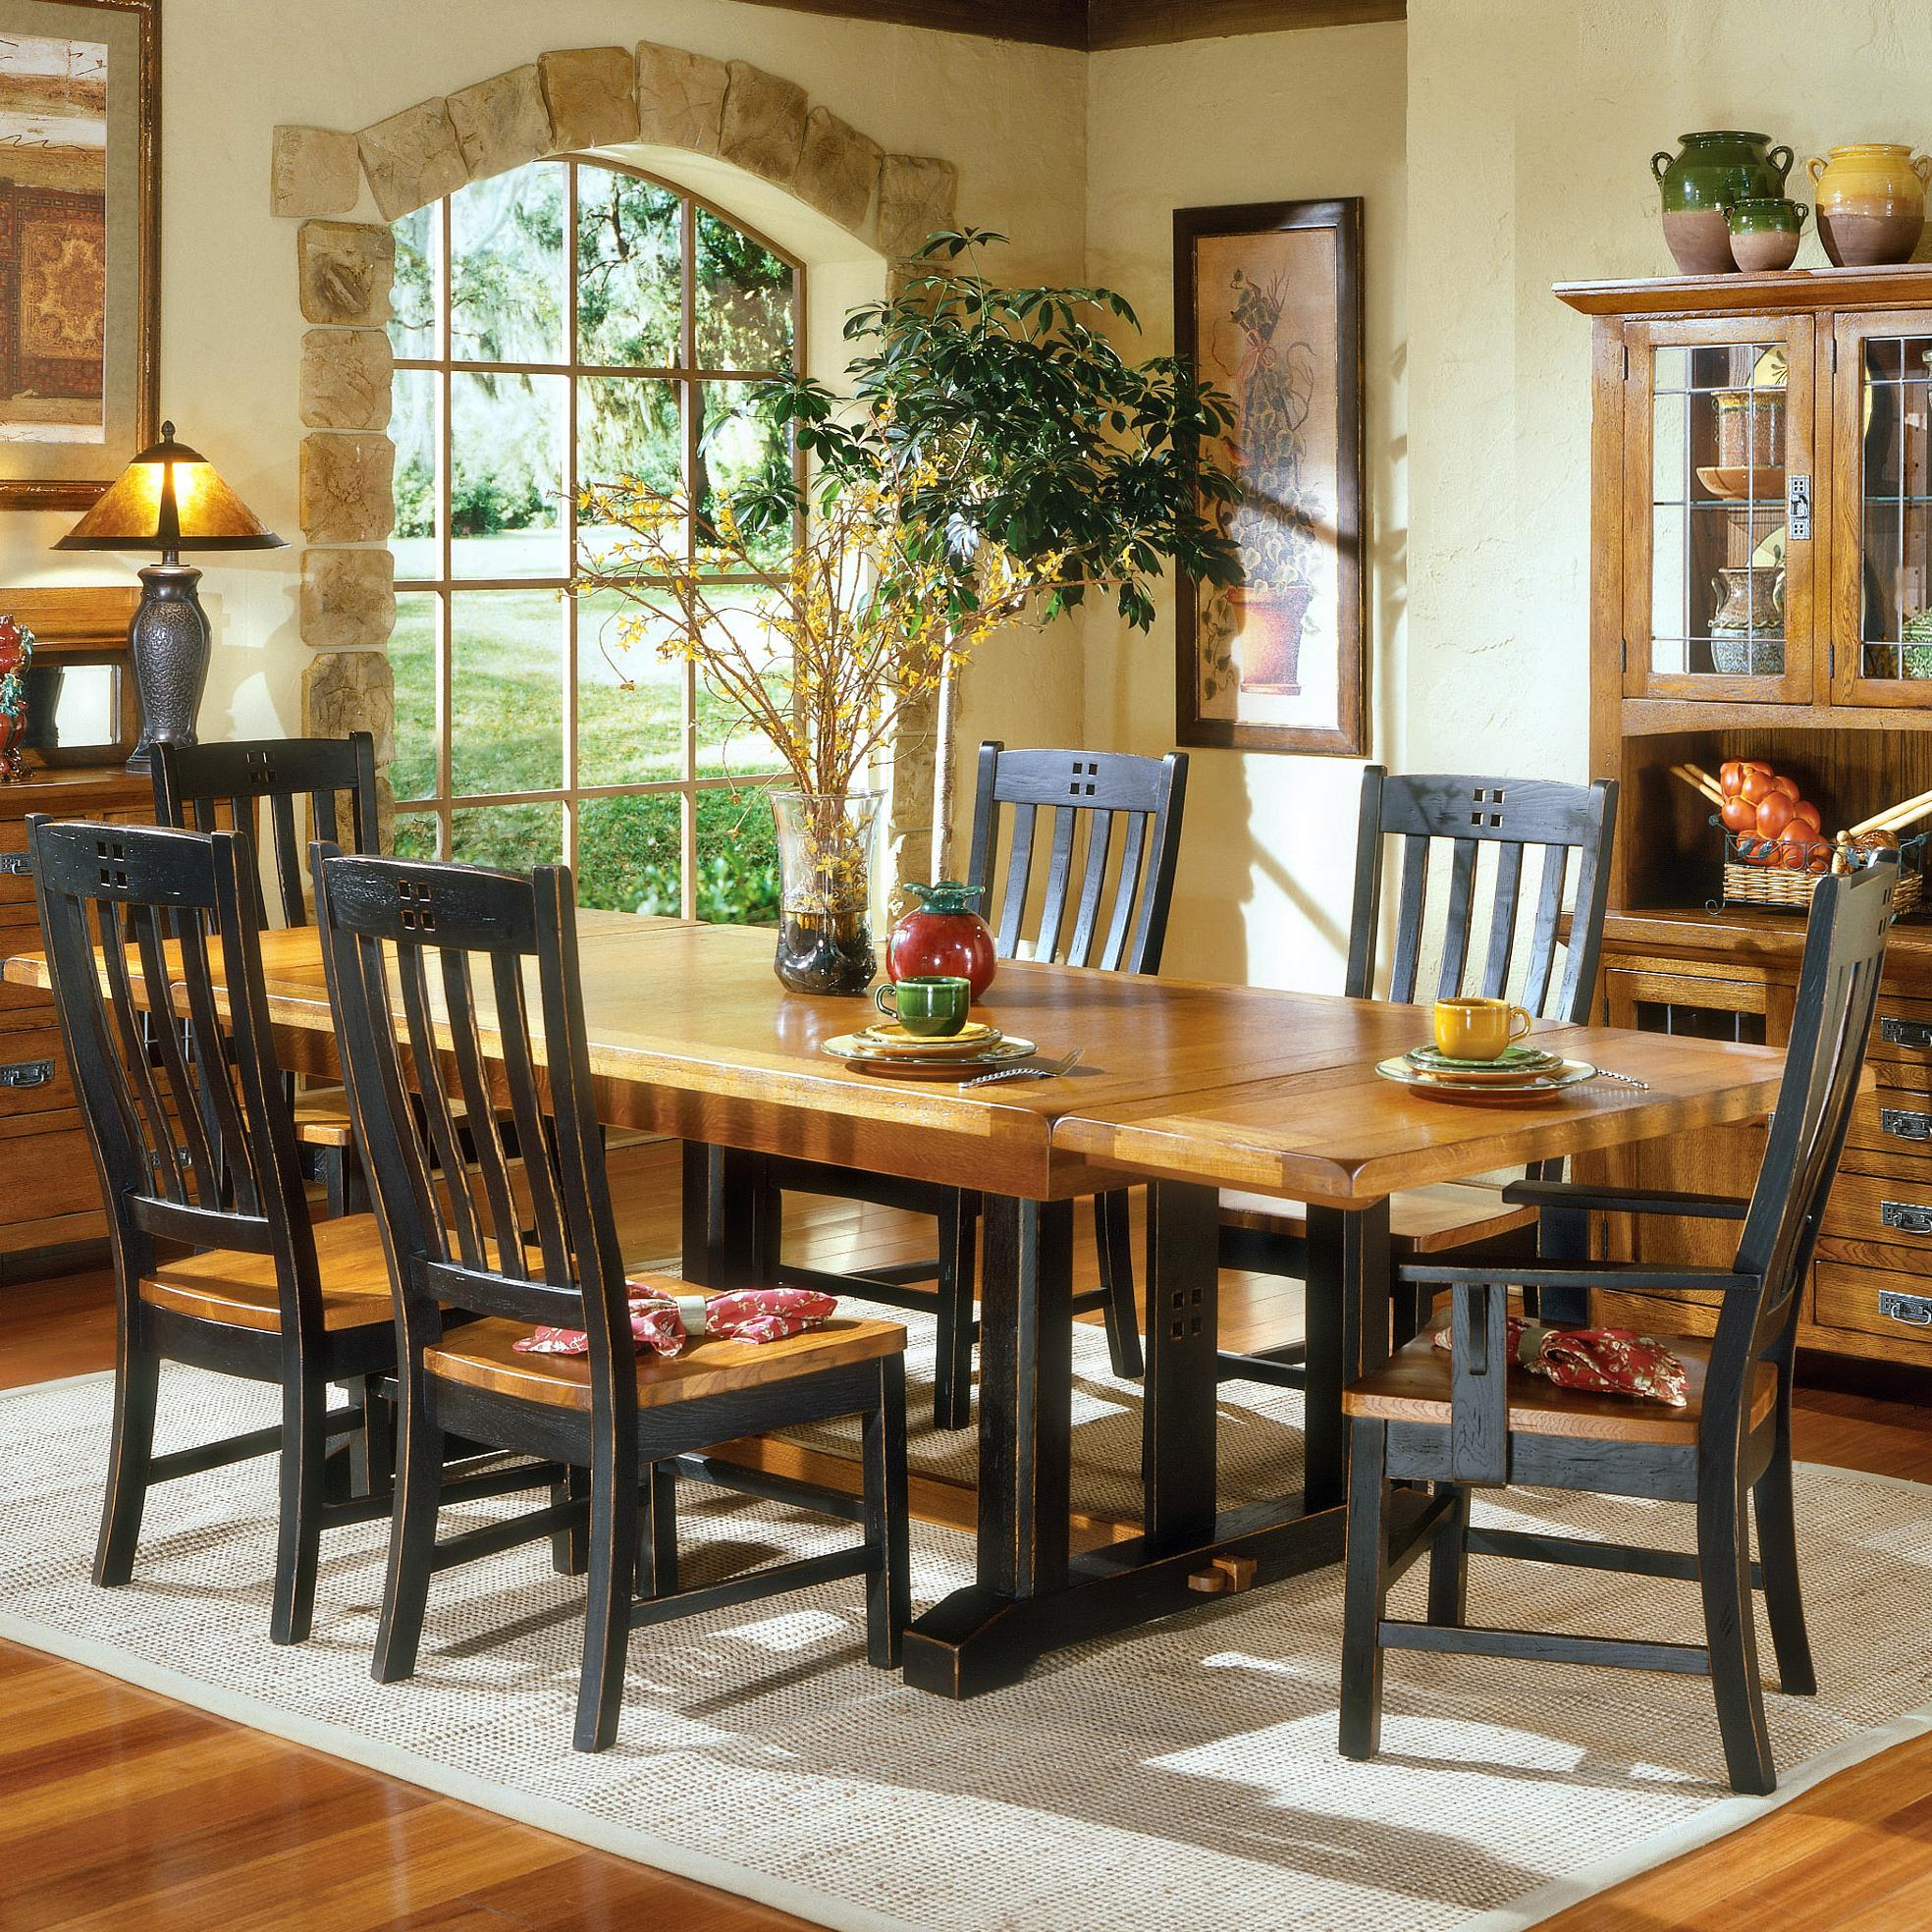 2017 Rustic Chairs For Dining Room Table